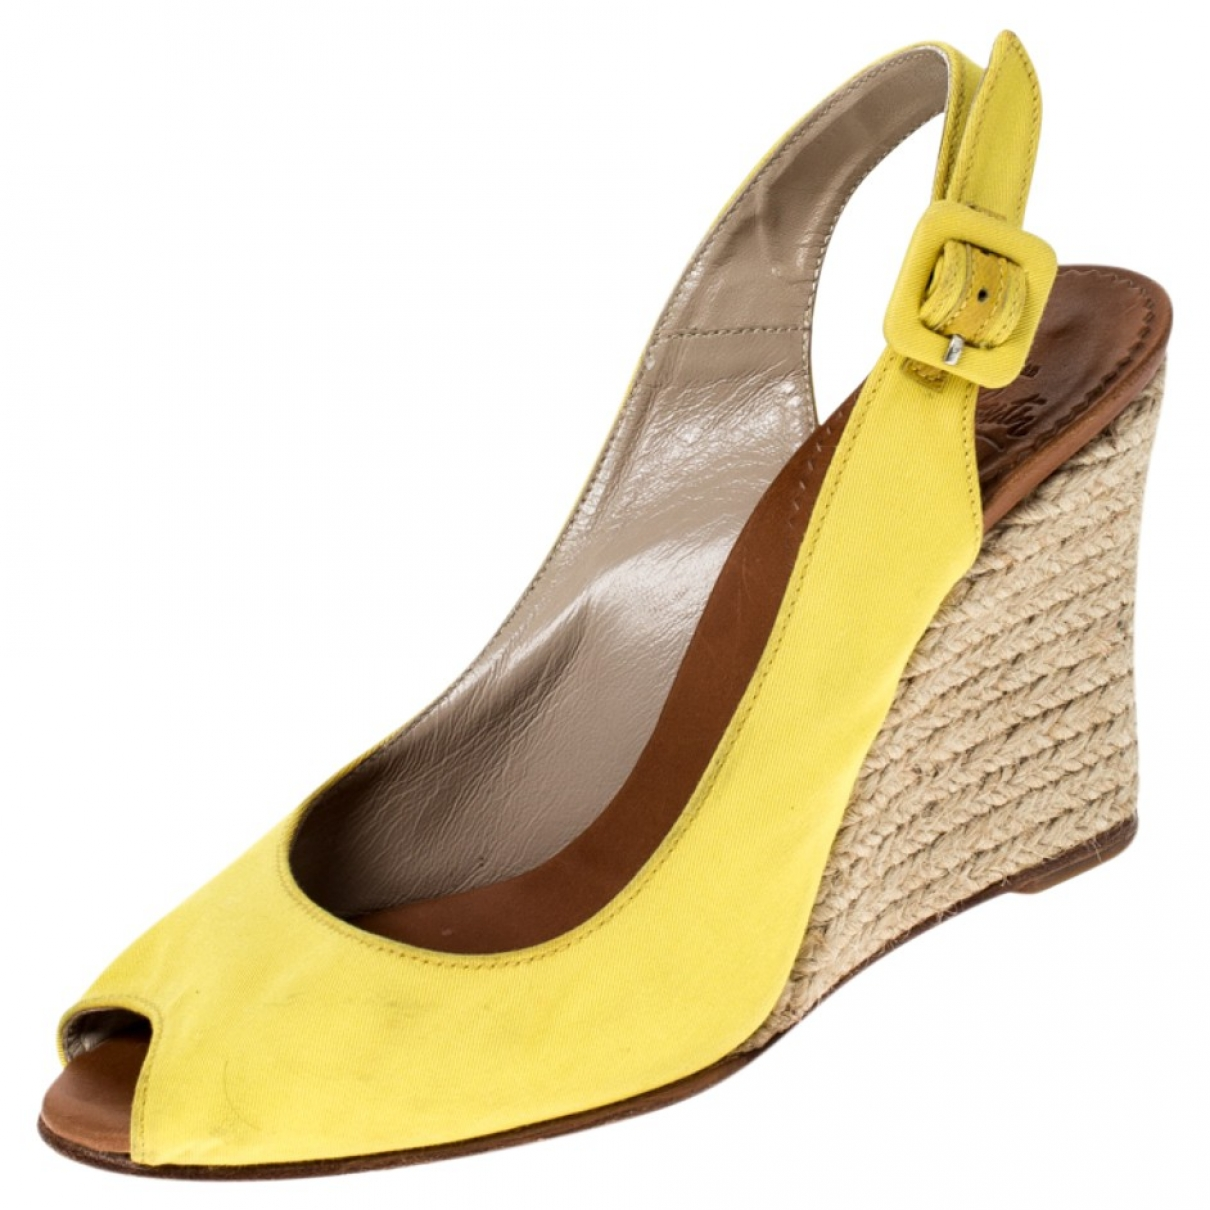 Christian Louboutin \N Yellow Leather Sandals for Women 5.5 US